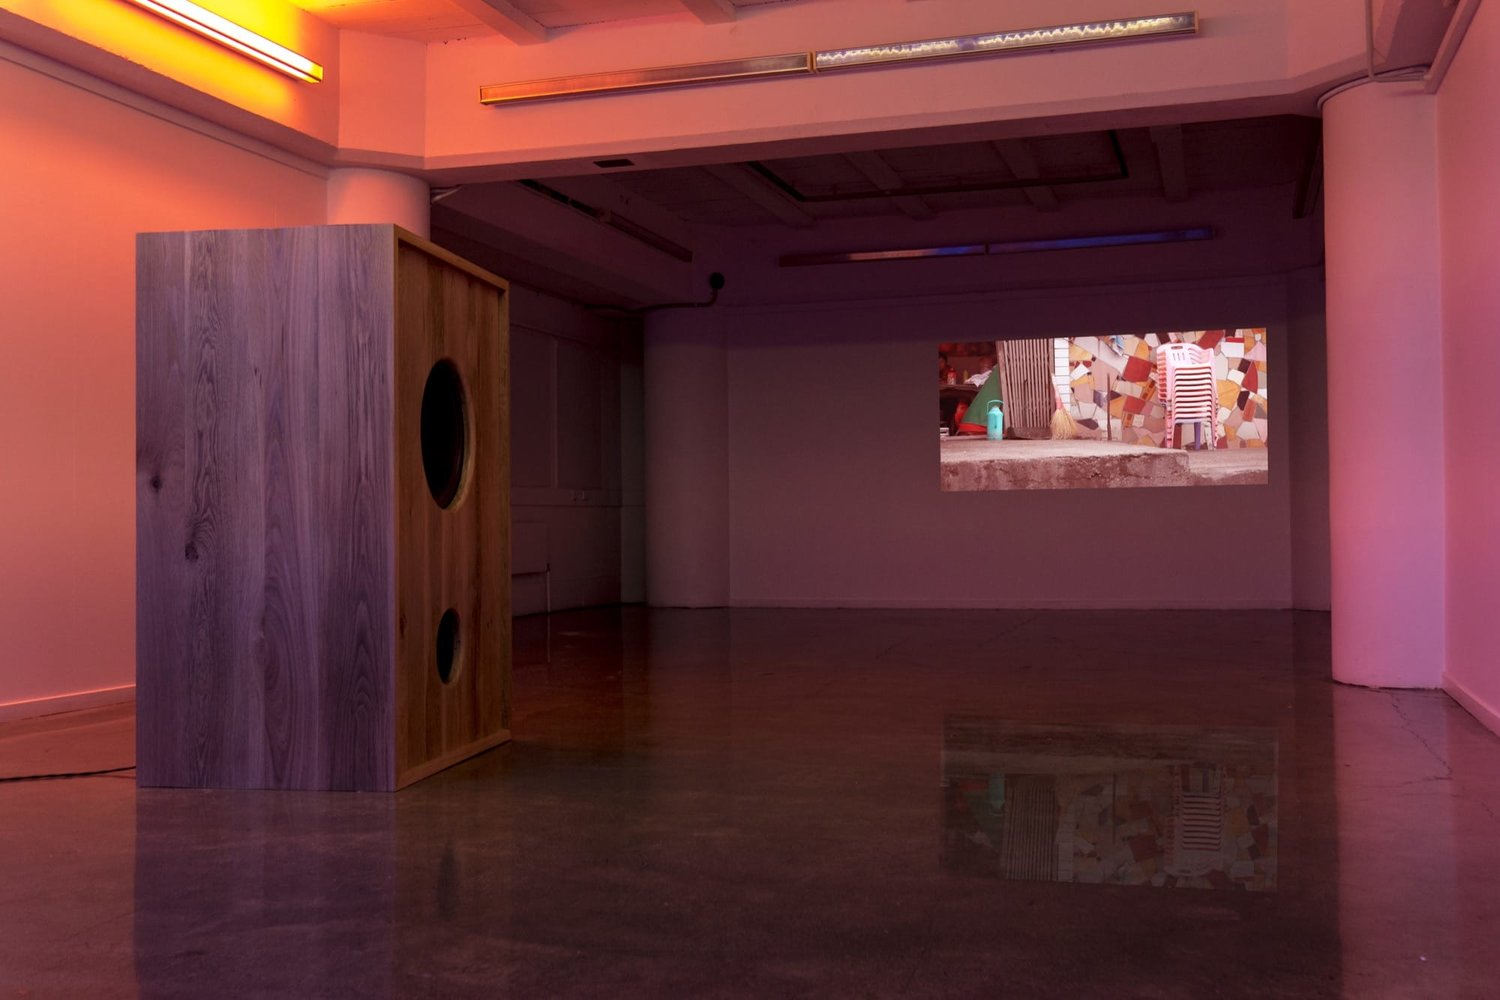 Kohikohiko+exhibtion+-+a+large+bass+speaker+and+video+projection.jpeg